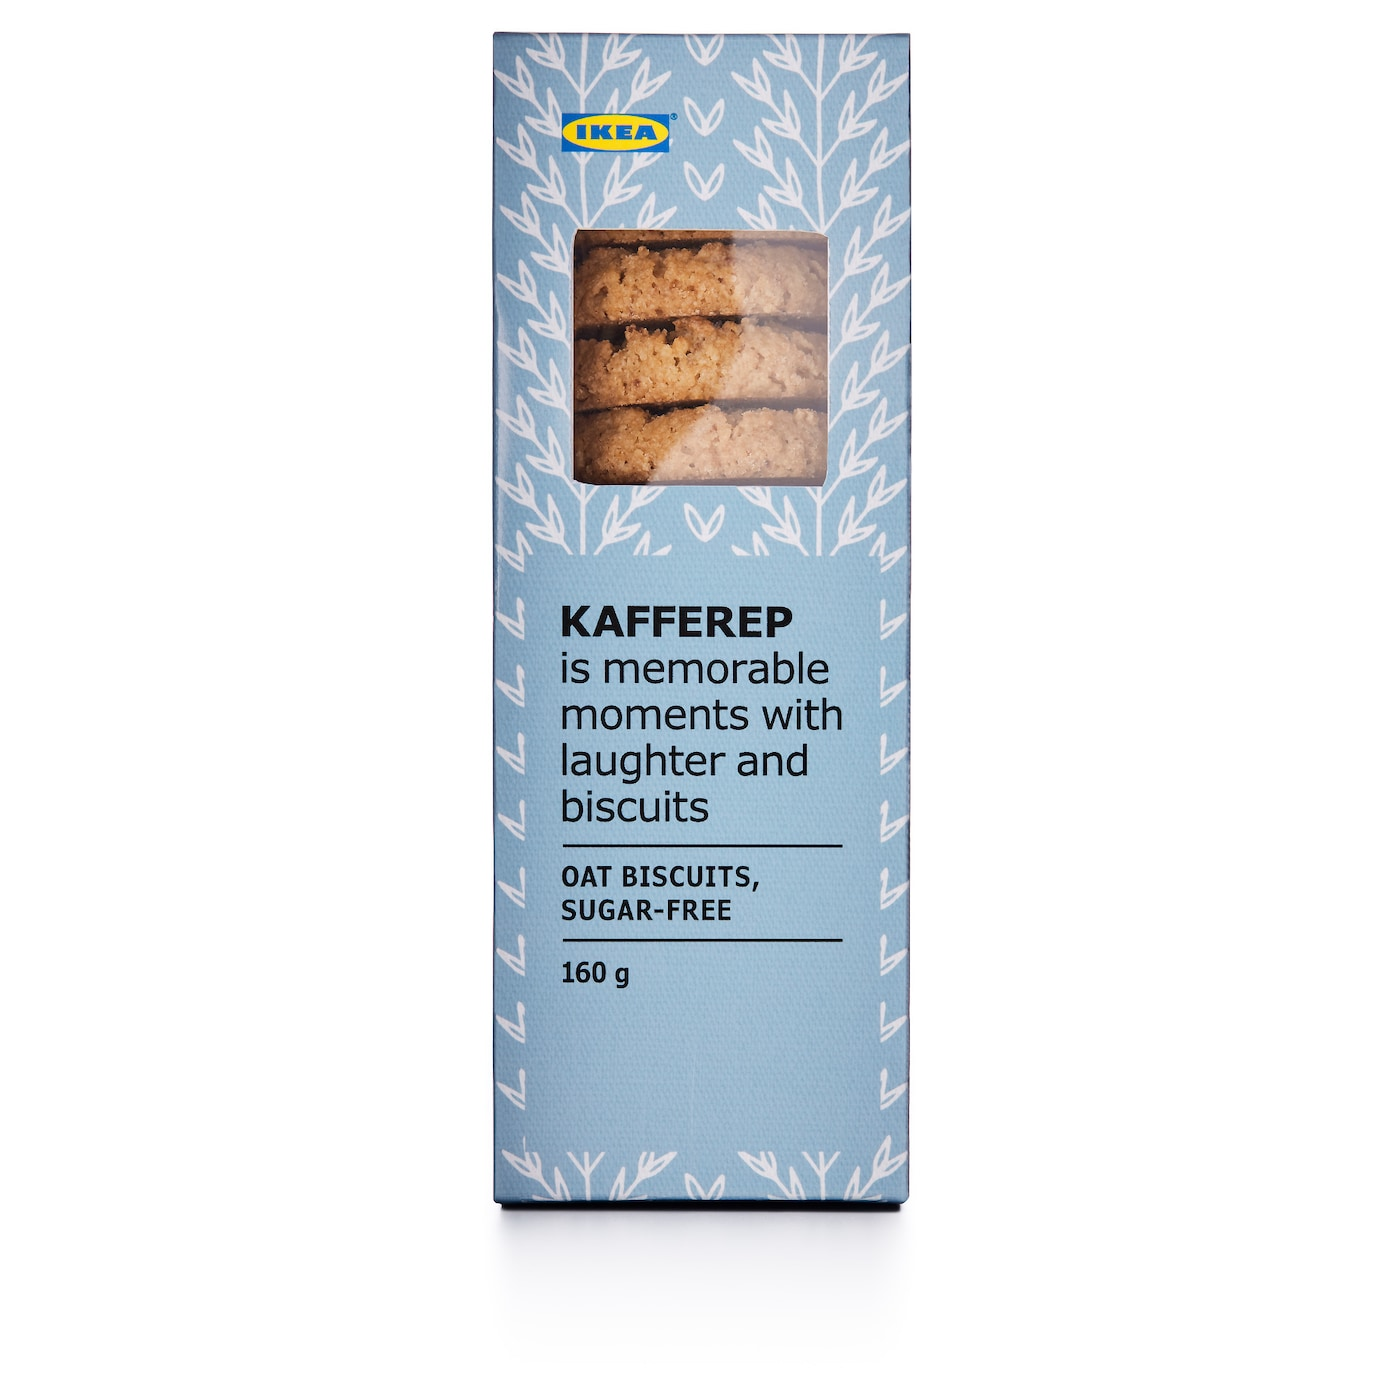 IKEA KAFFEREP oat biscuits Crunchy and delicate oat biscuits with a touch of caramel.